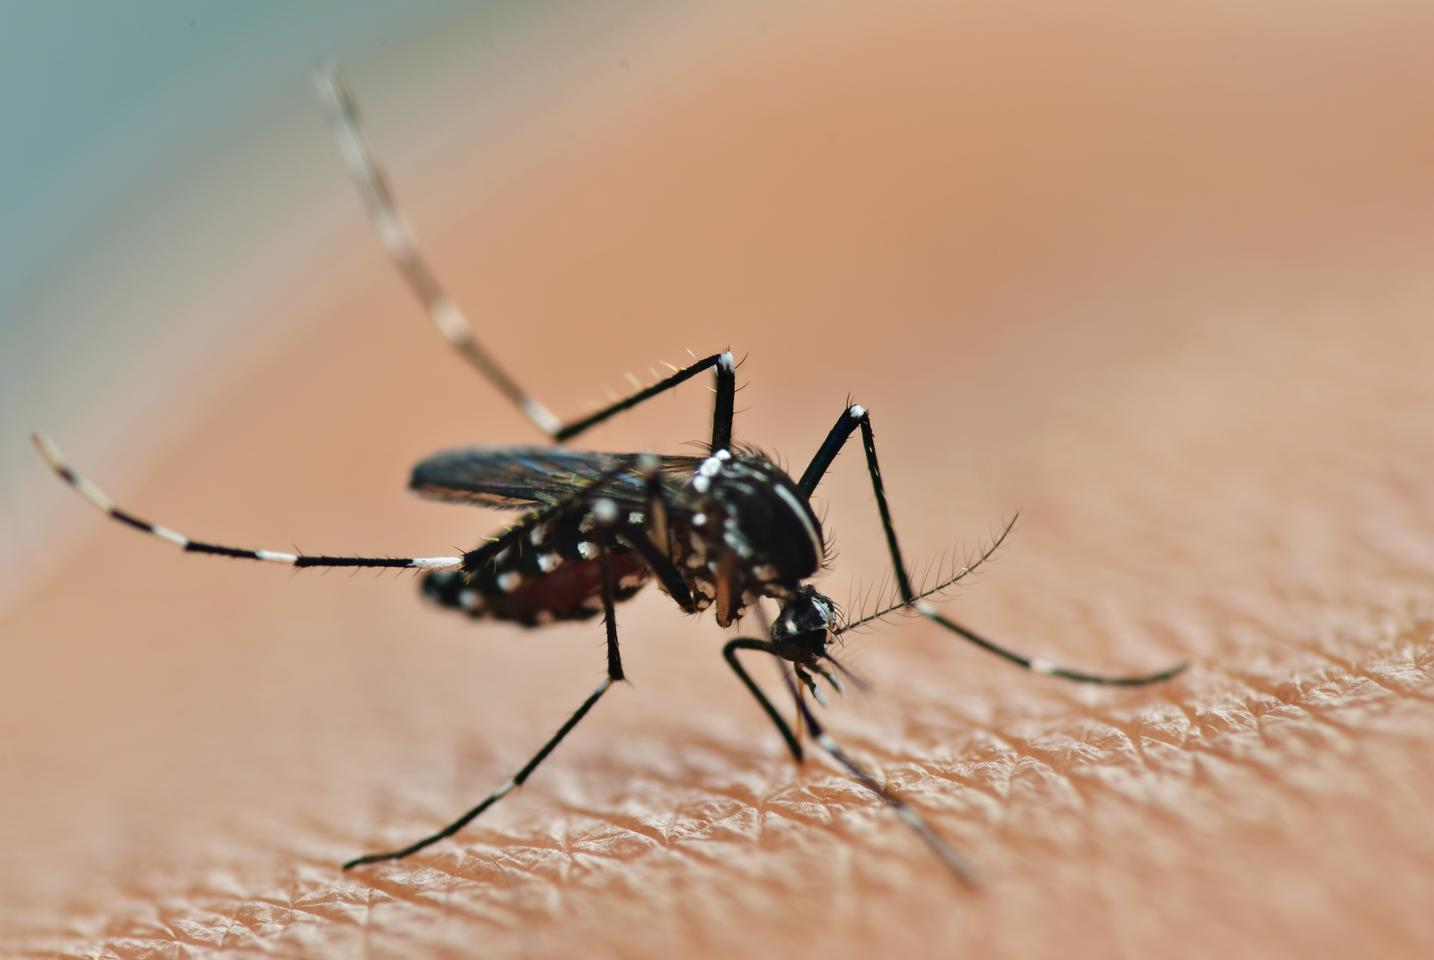 Research has found that mosquitoes use binding proteins on their legs to detect insecticides